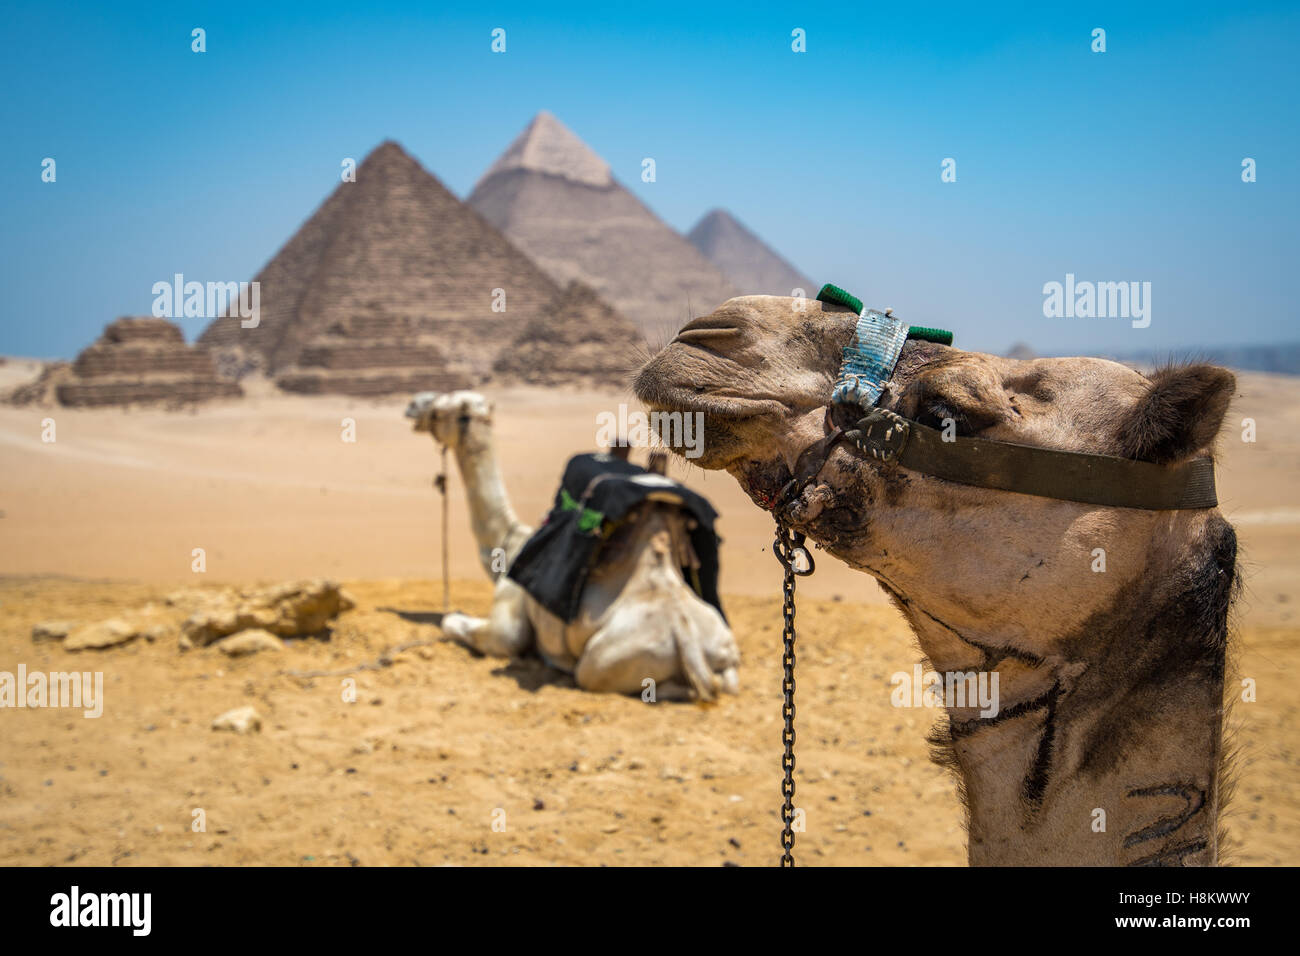 Cairo, Egypt Two camels resting in the desert with the three Great Pyramids of Giza in the background against a - Stock Image